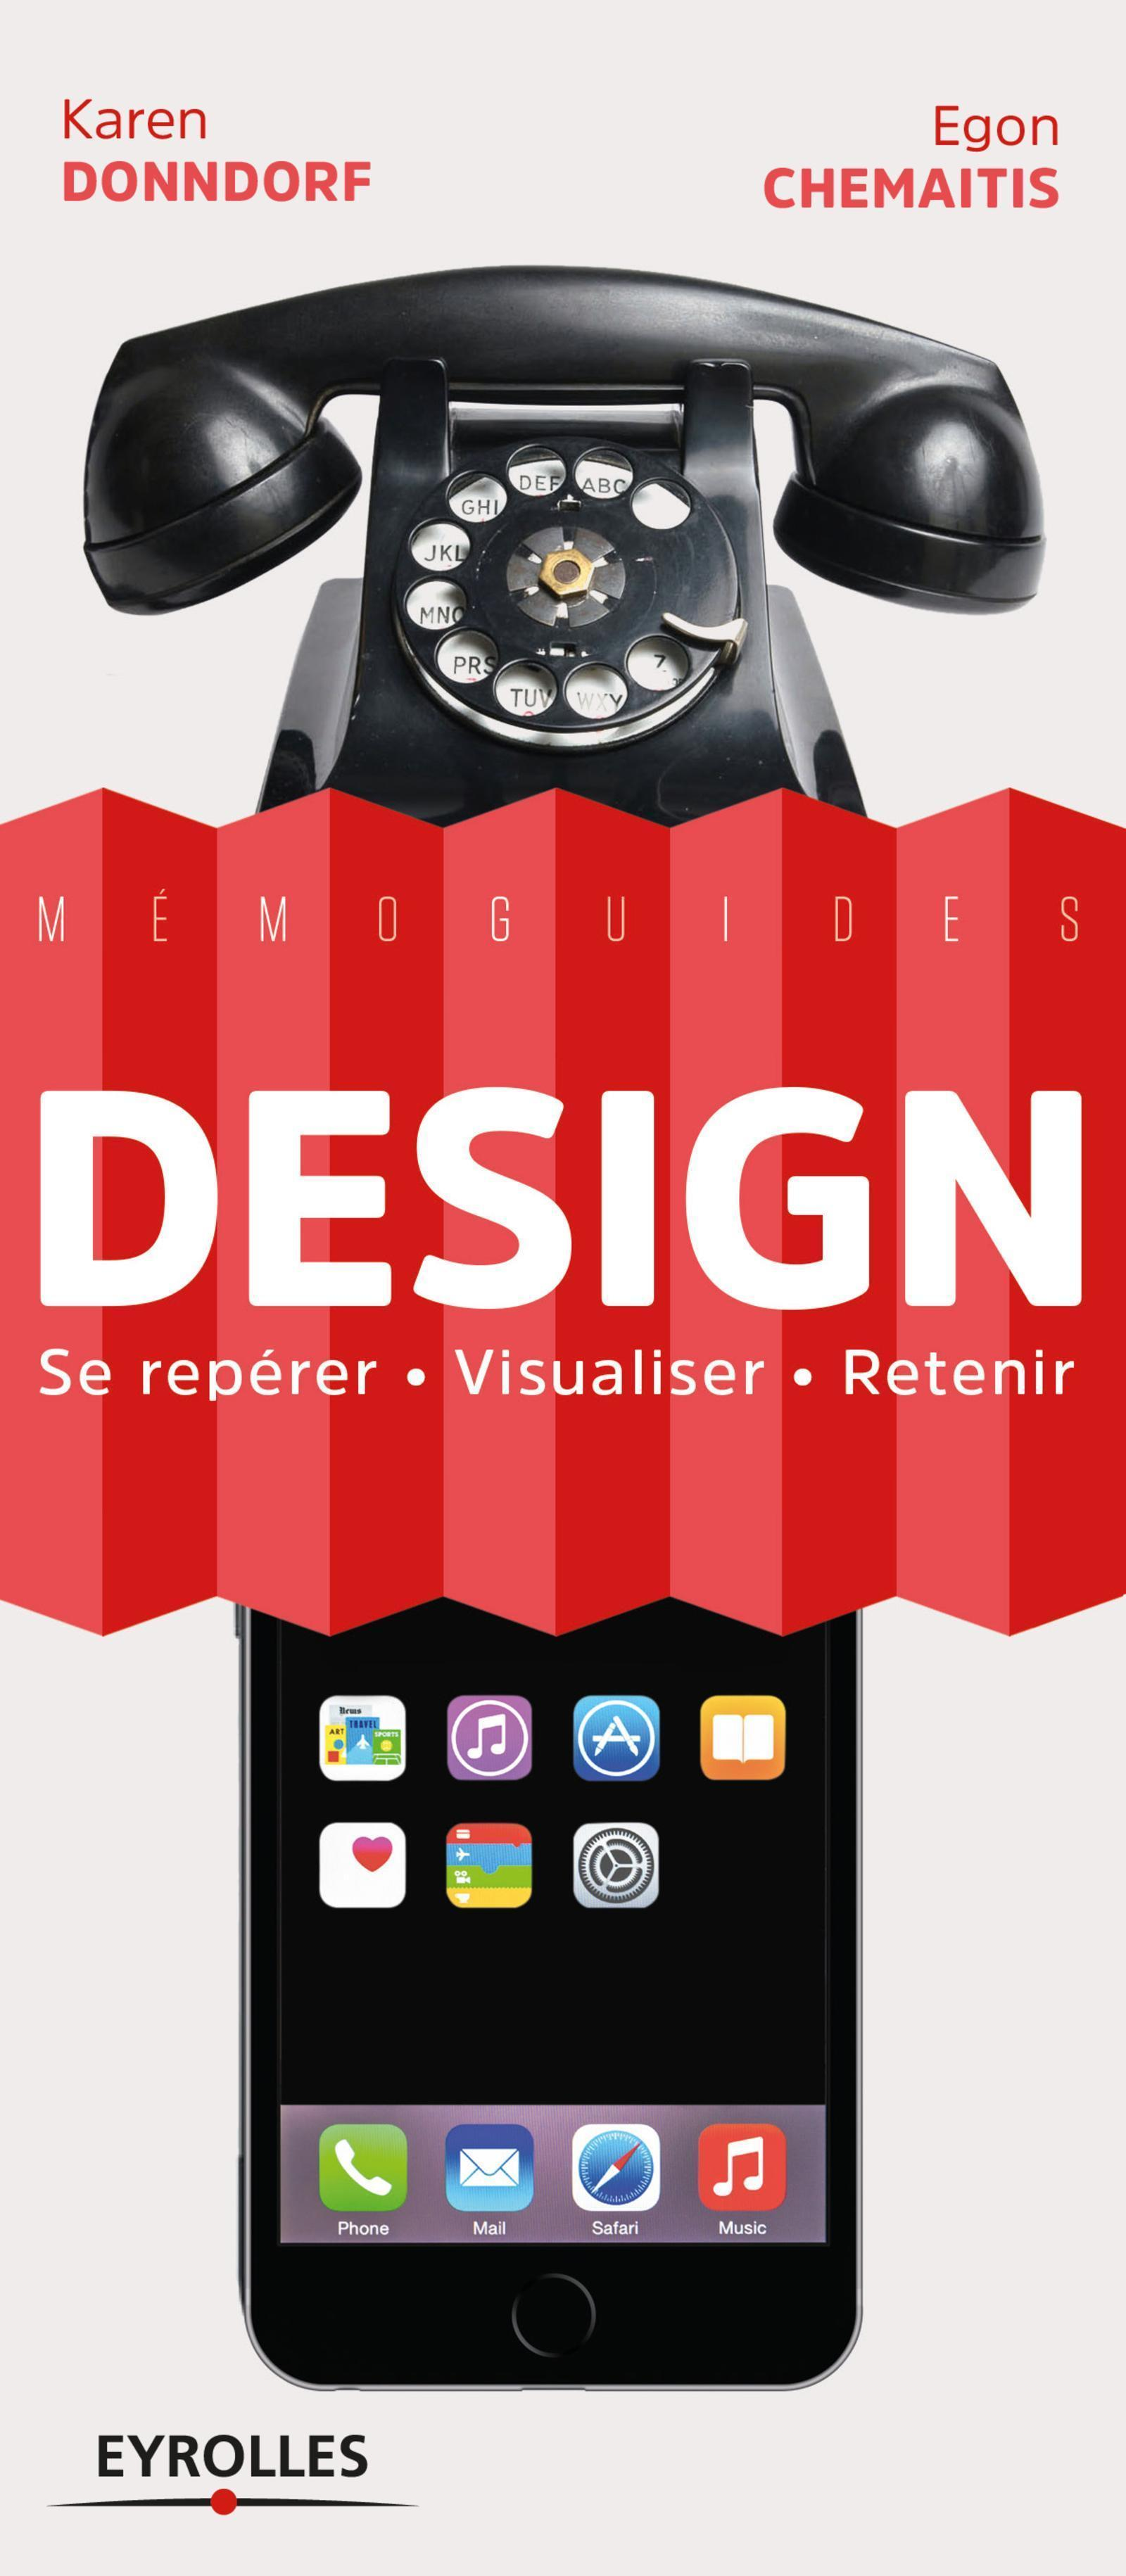 DESIGN - SE REPERER - VISUALISER - RETENIR